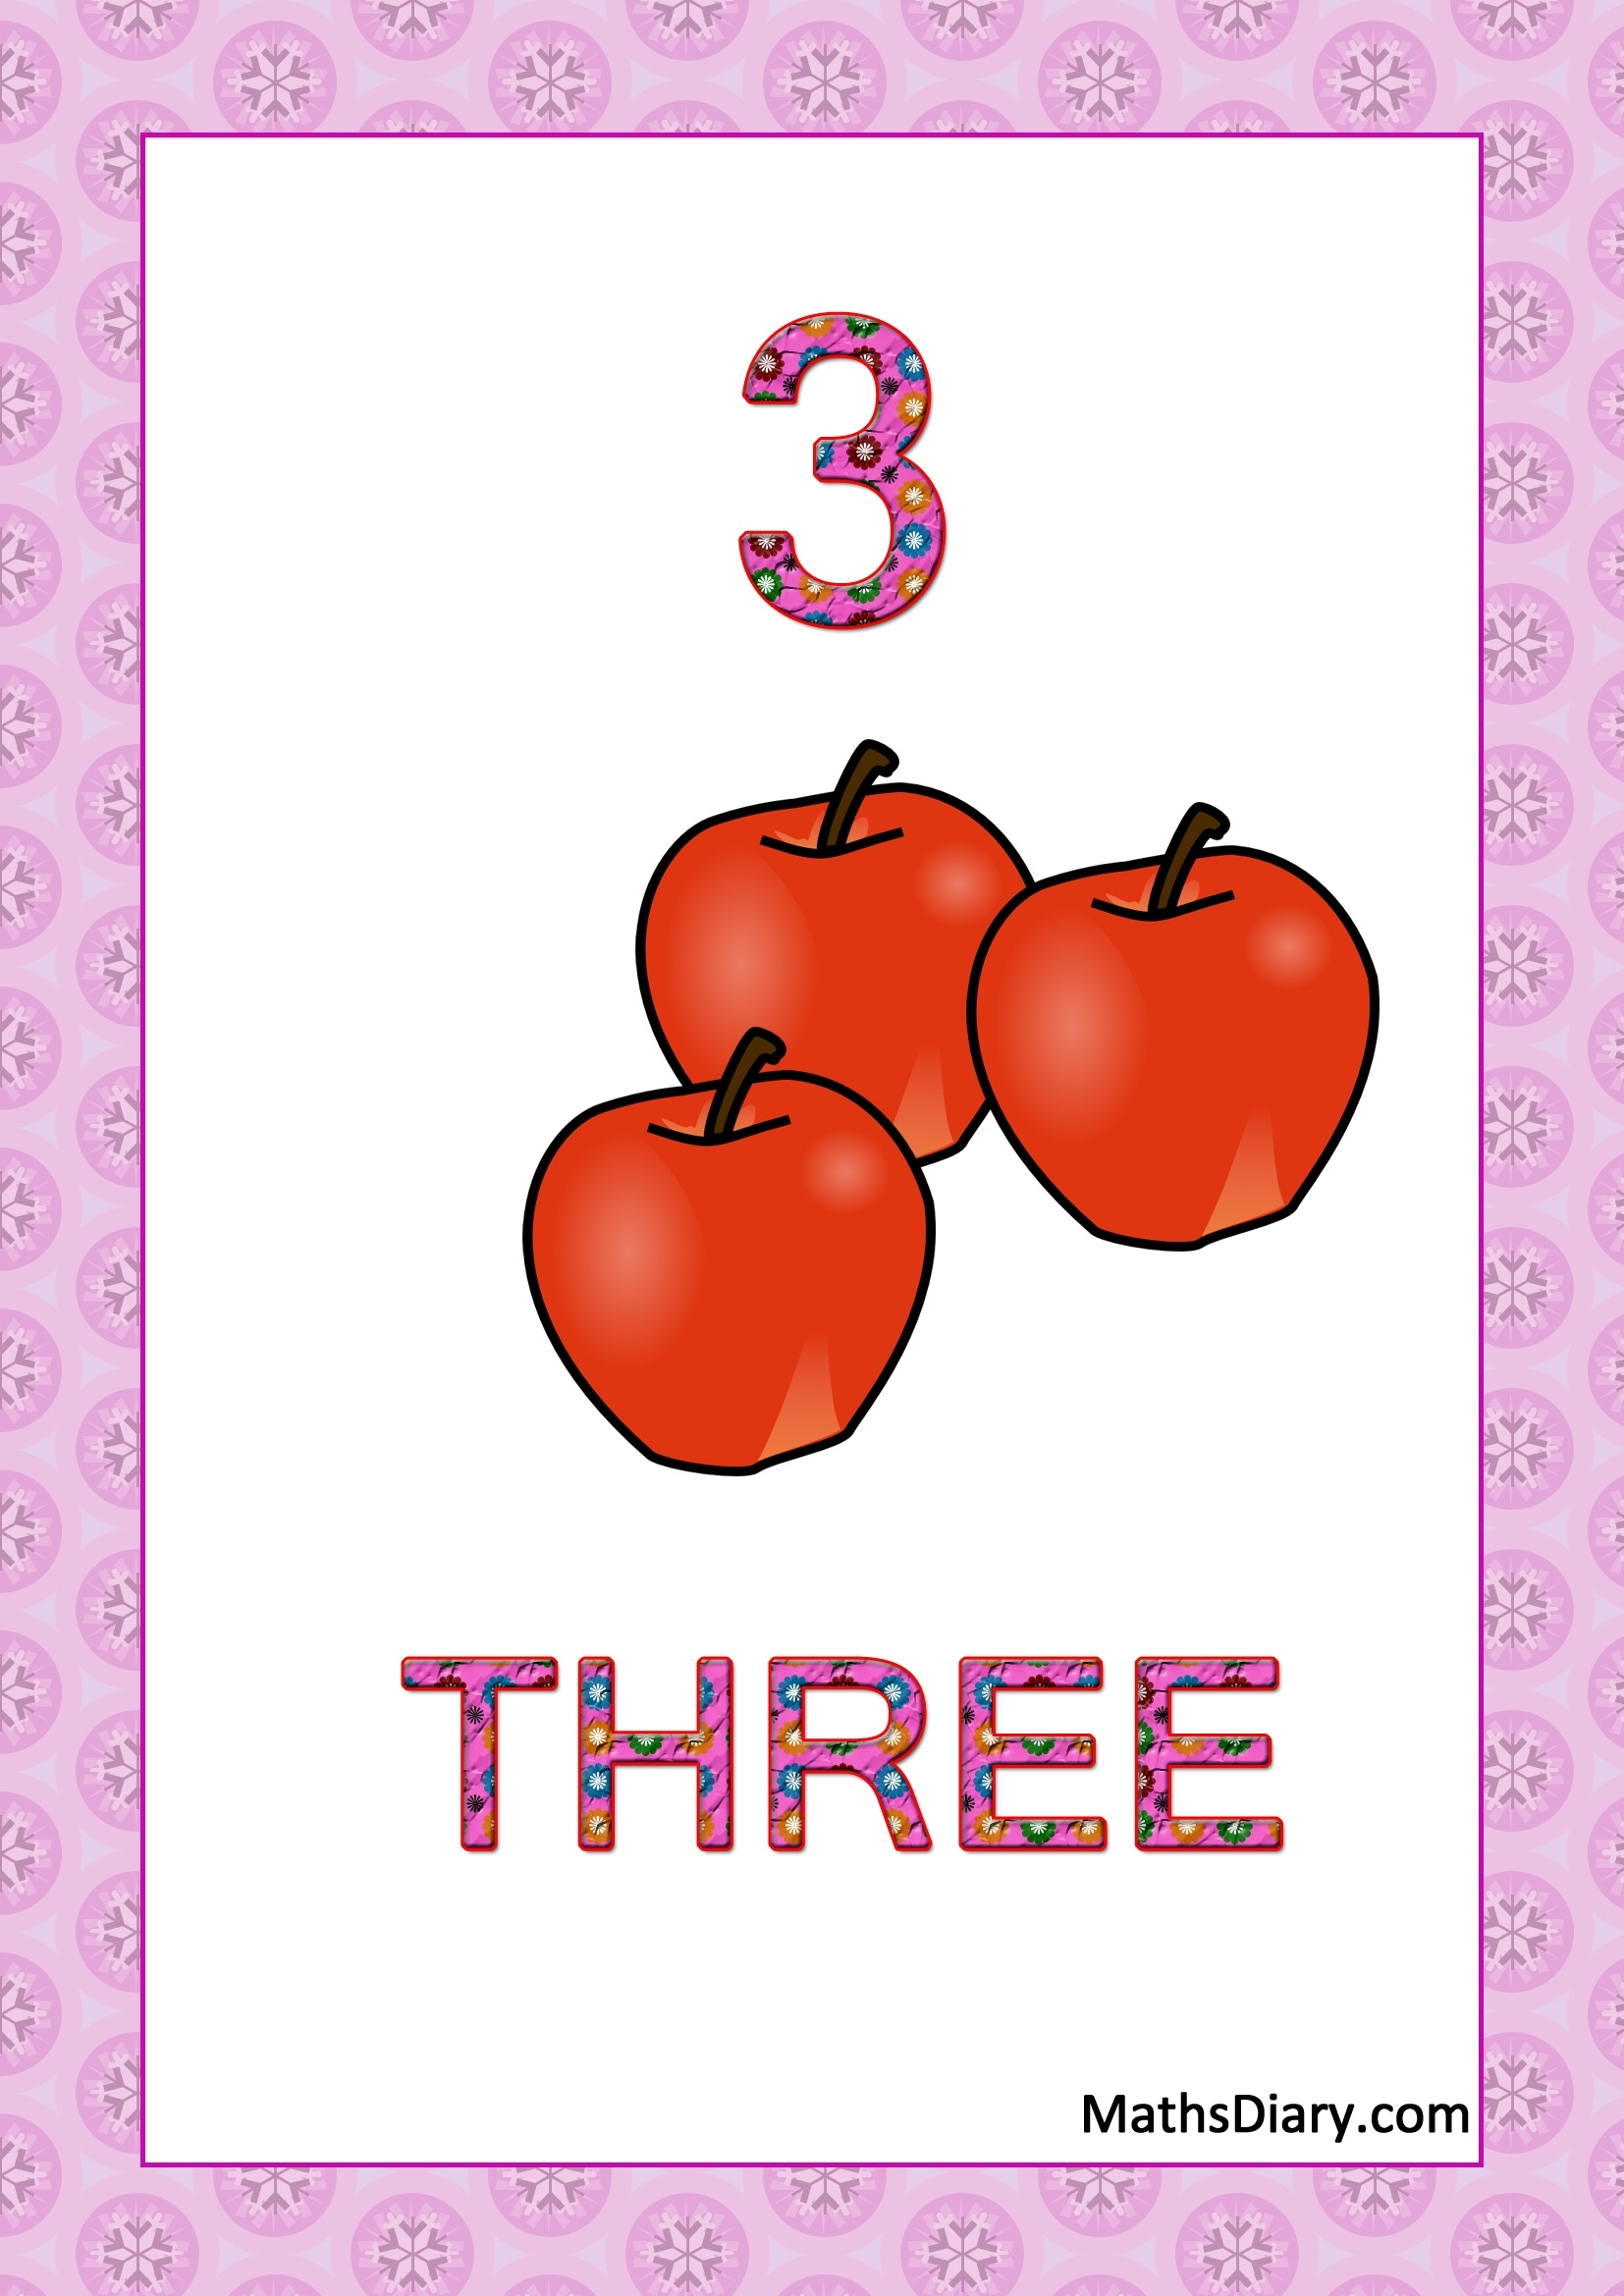 Counting Nursery Math Worksheets